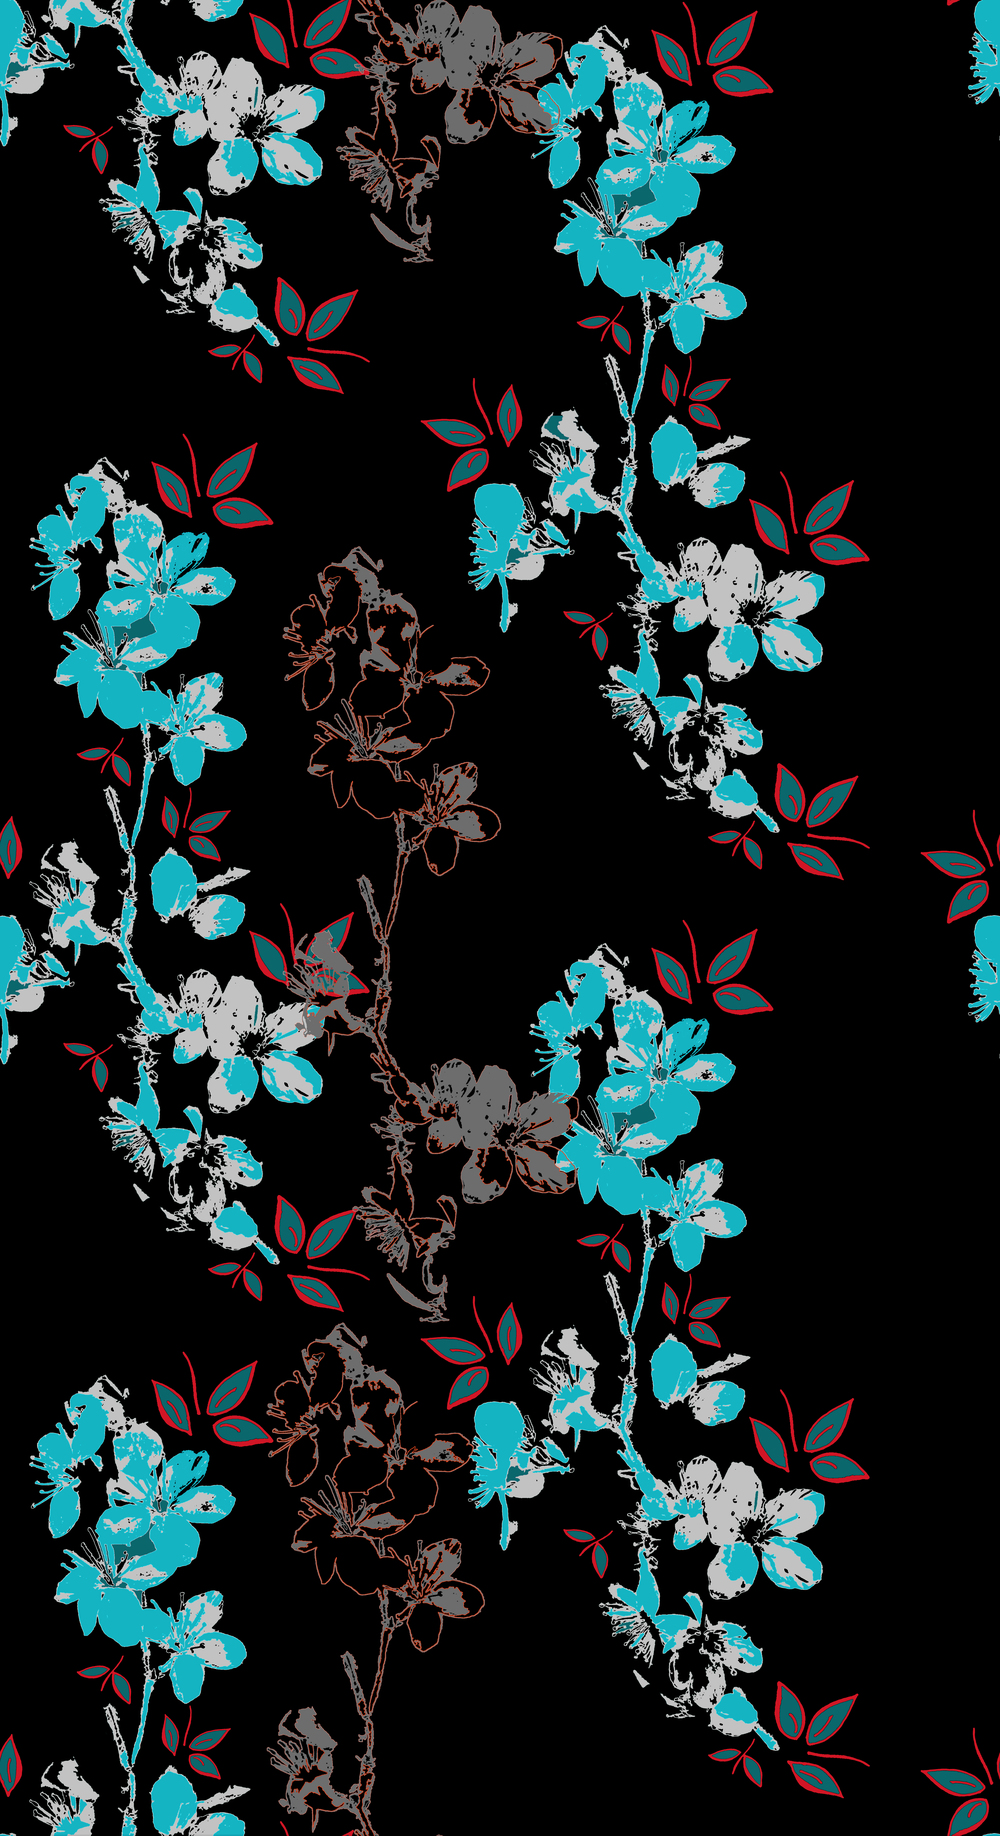 blossom design wallpaper black